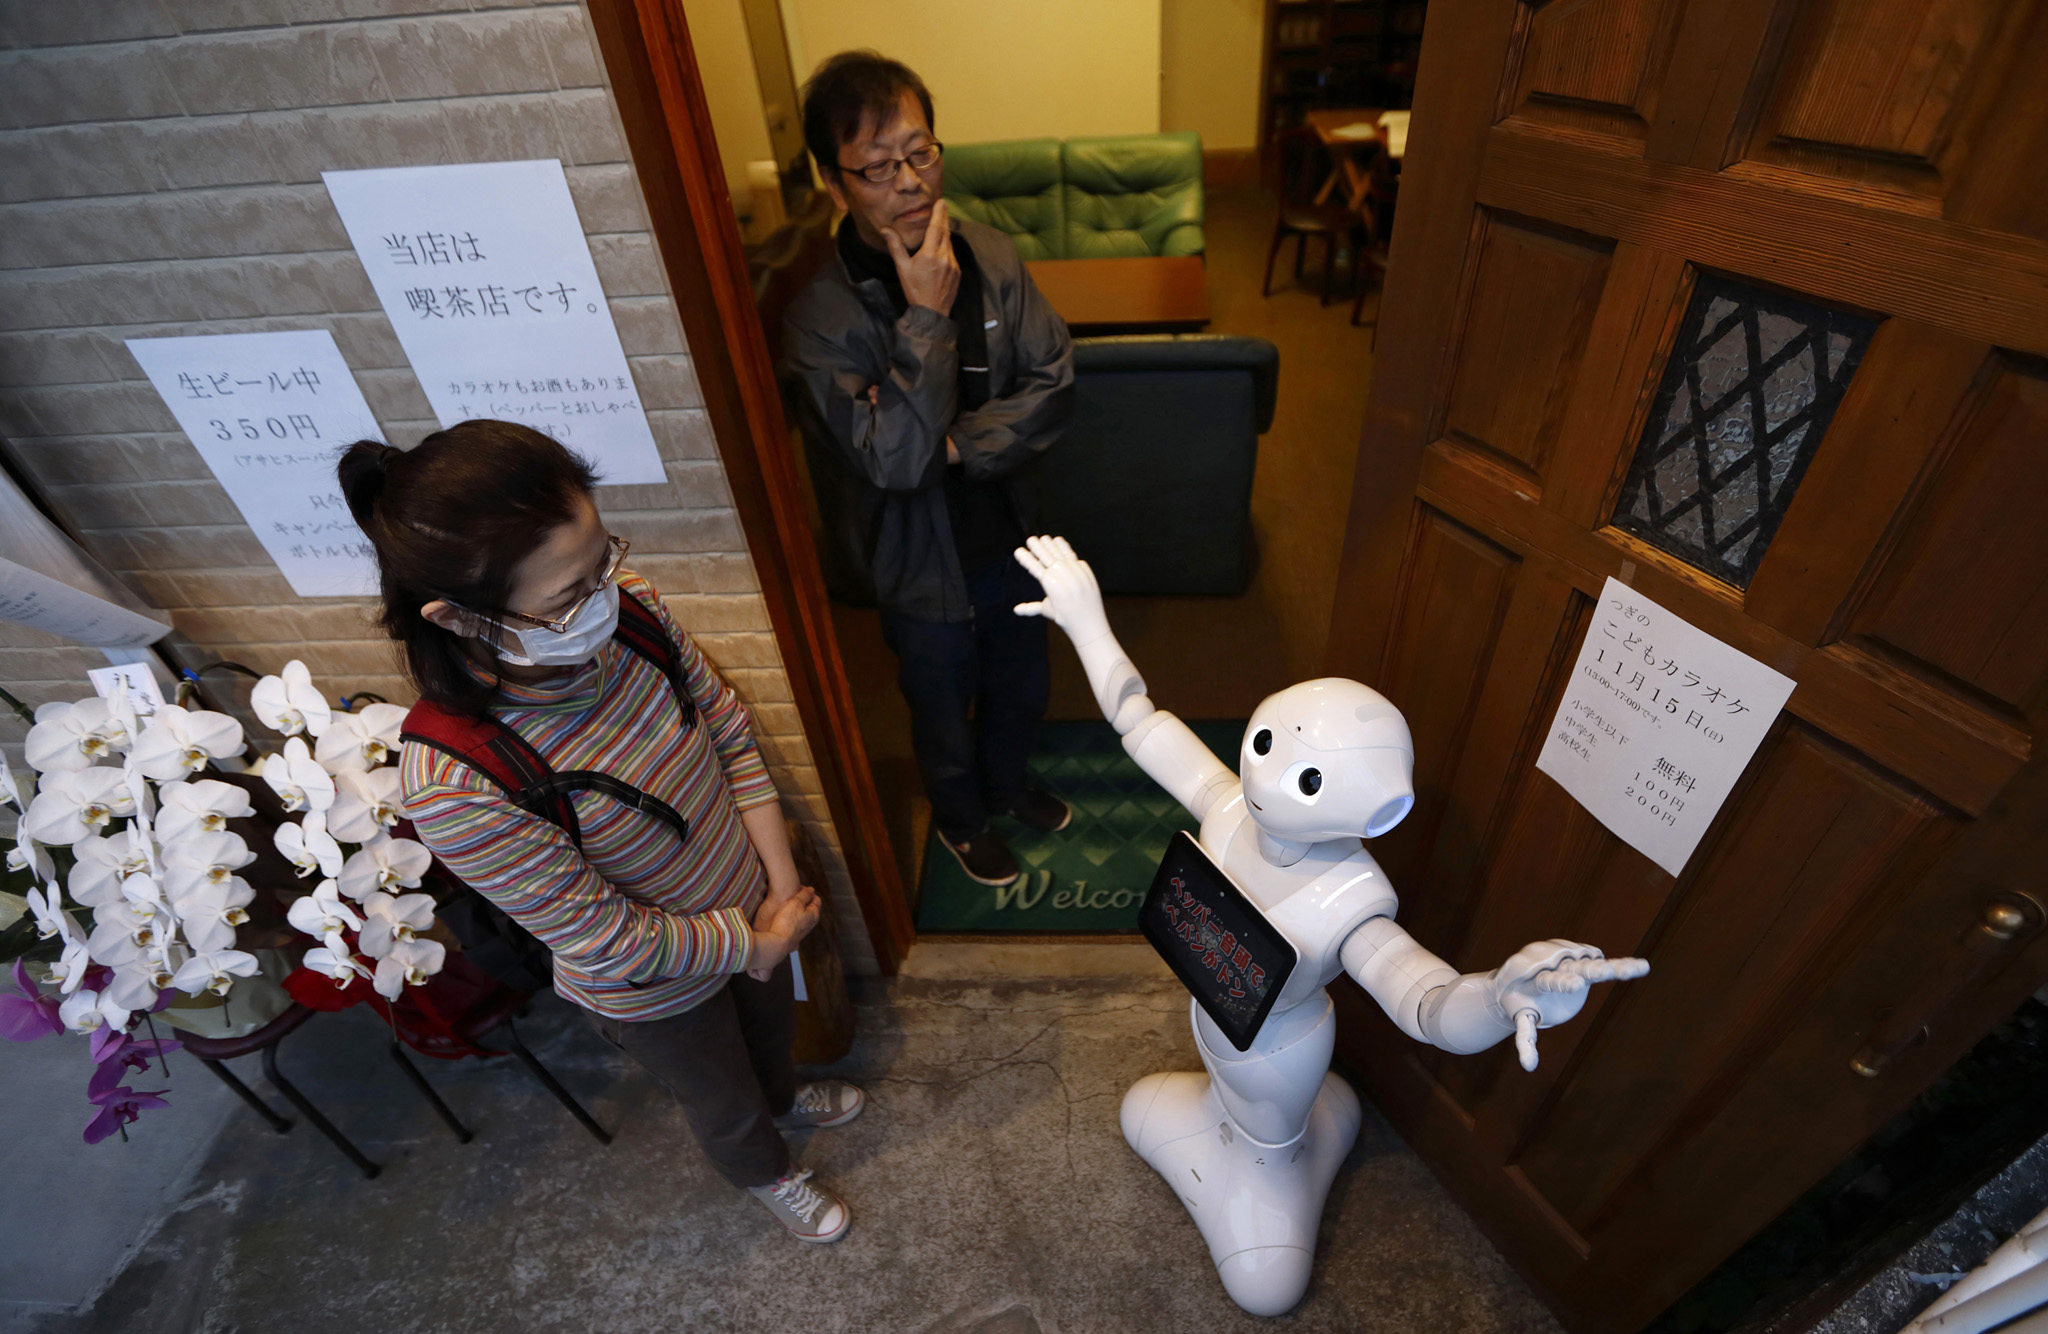 asahiko Yoshida, owner of a karaoke bar, center, looks on as a customer interacts with Pepper the humanoid robot